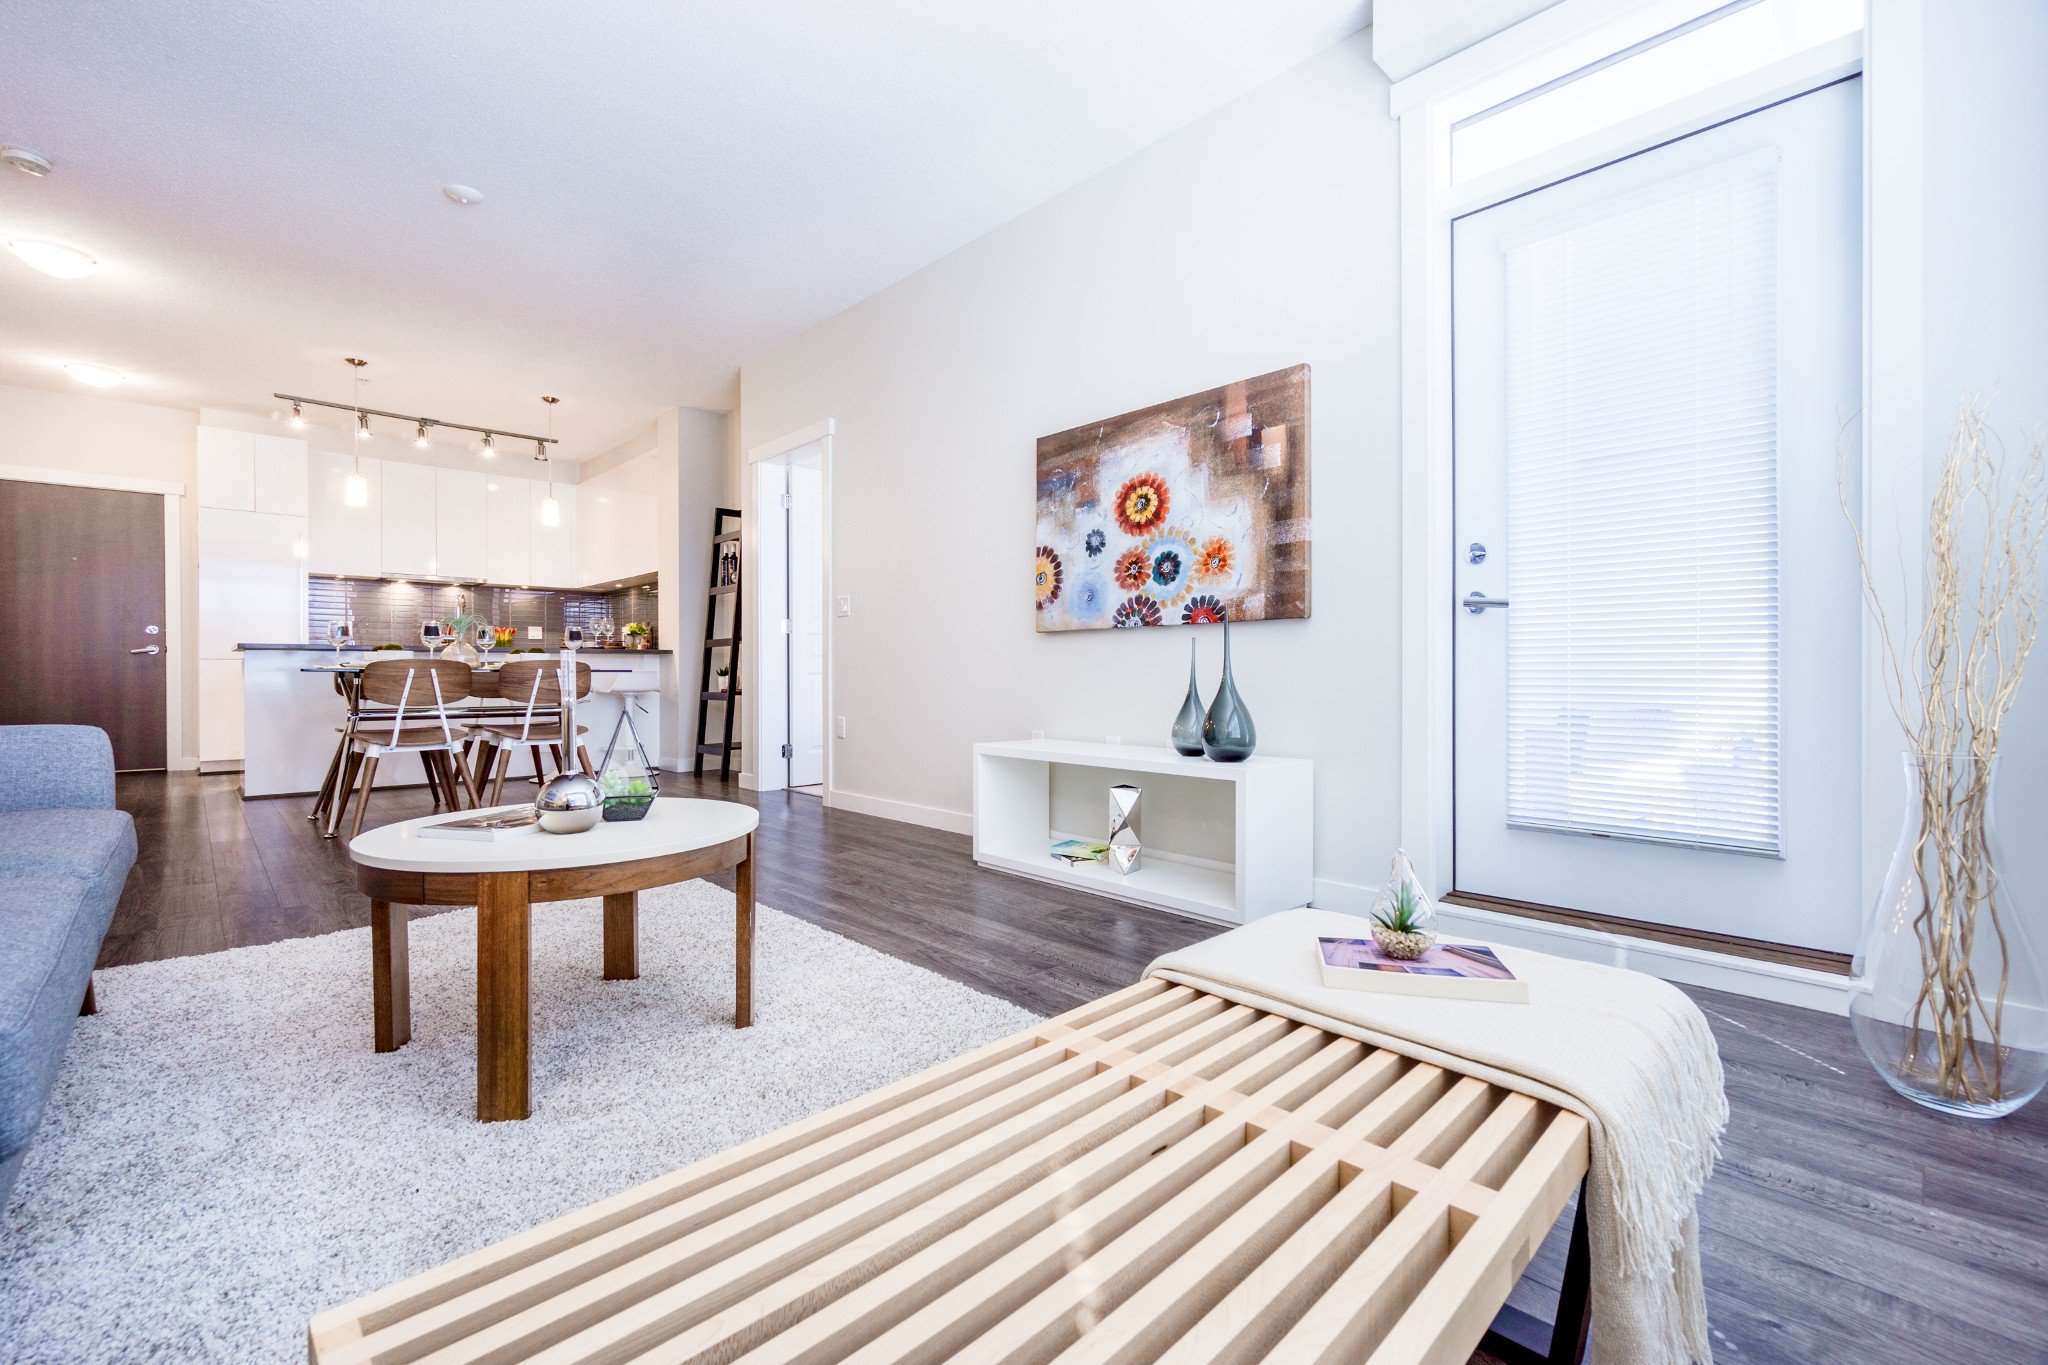 """Photo 17: Photos: 402 9311 ALEXANDRA Road in Richmond: West Cambie Condo for sale in """"ALEXANDRA COURT"""" : MLS®# R2266613"""